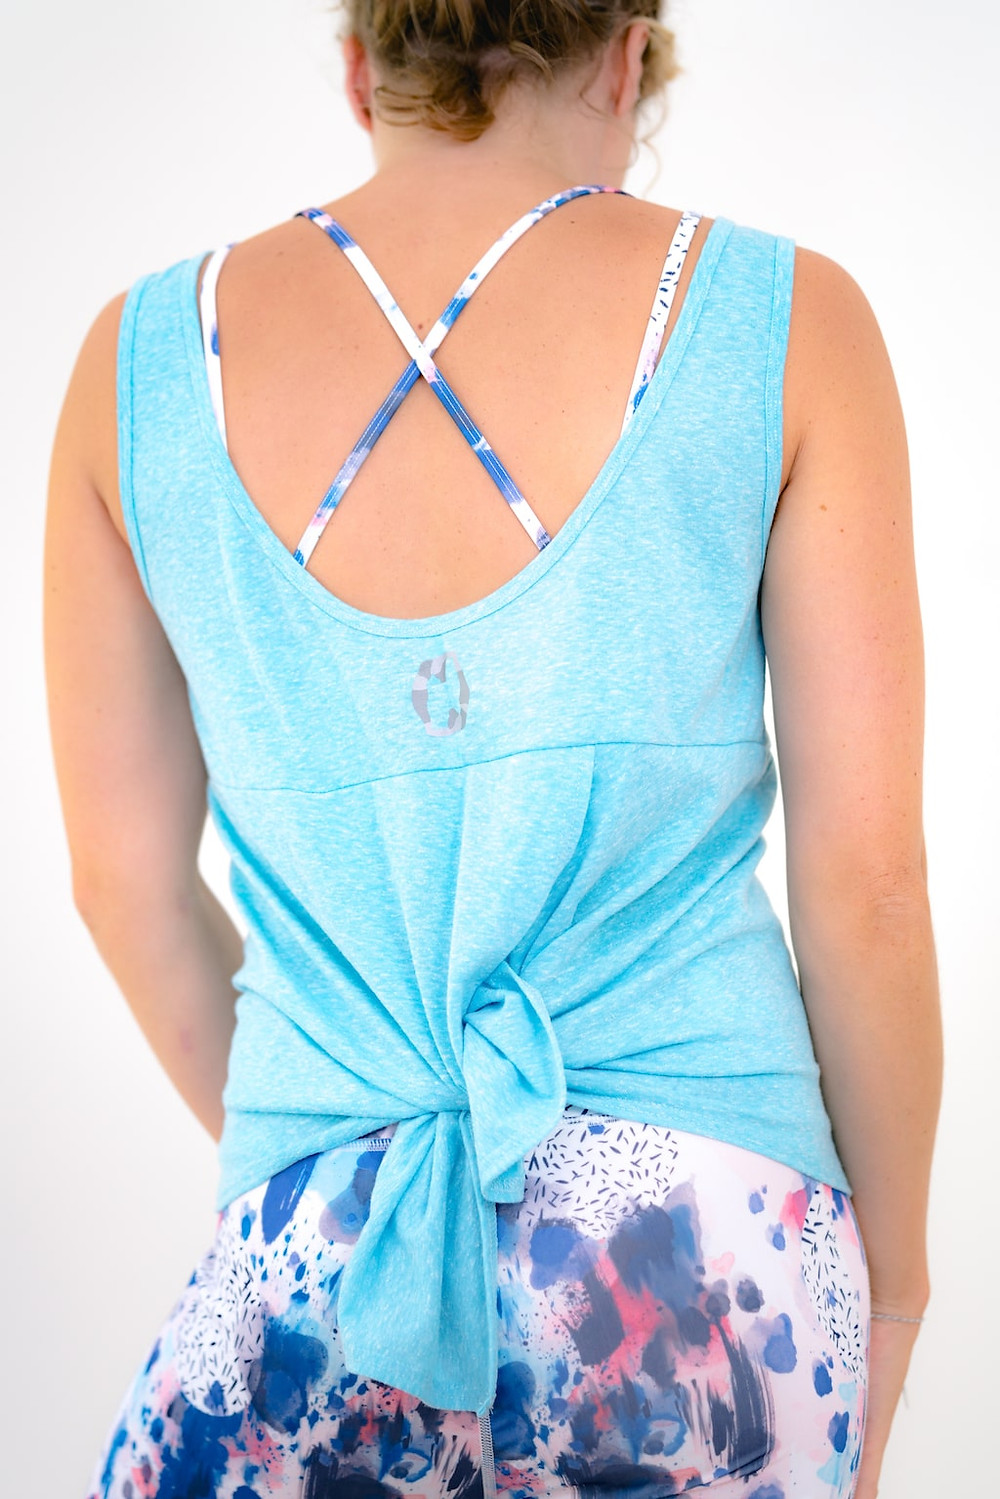 Printed Leggings & Crops Sets, Tops & Cover-Ups by Yummy Yoga Girl